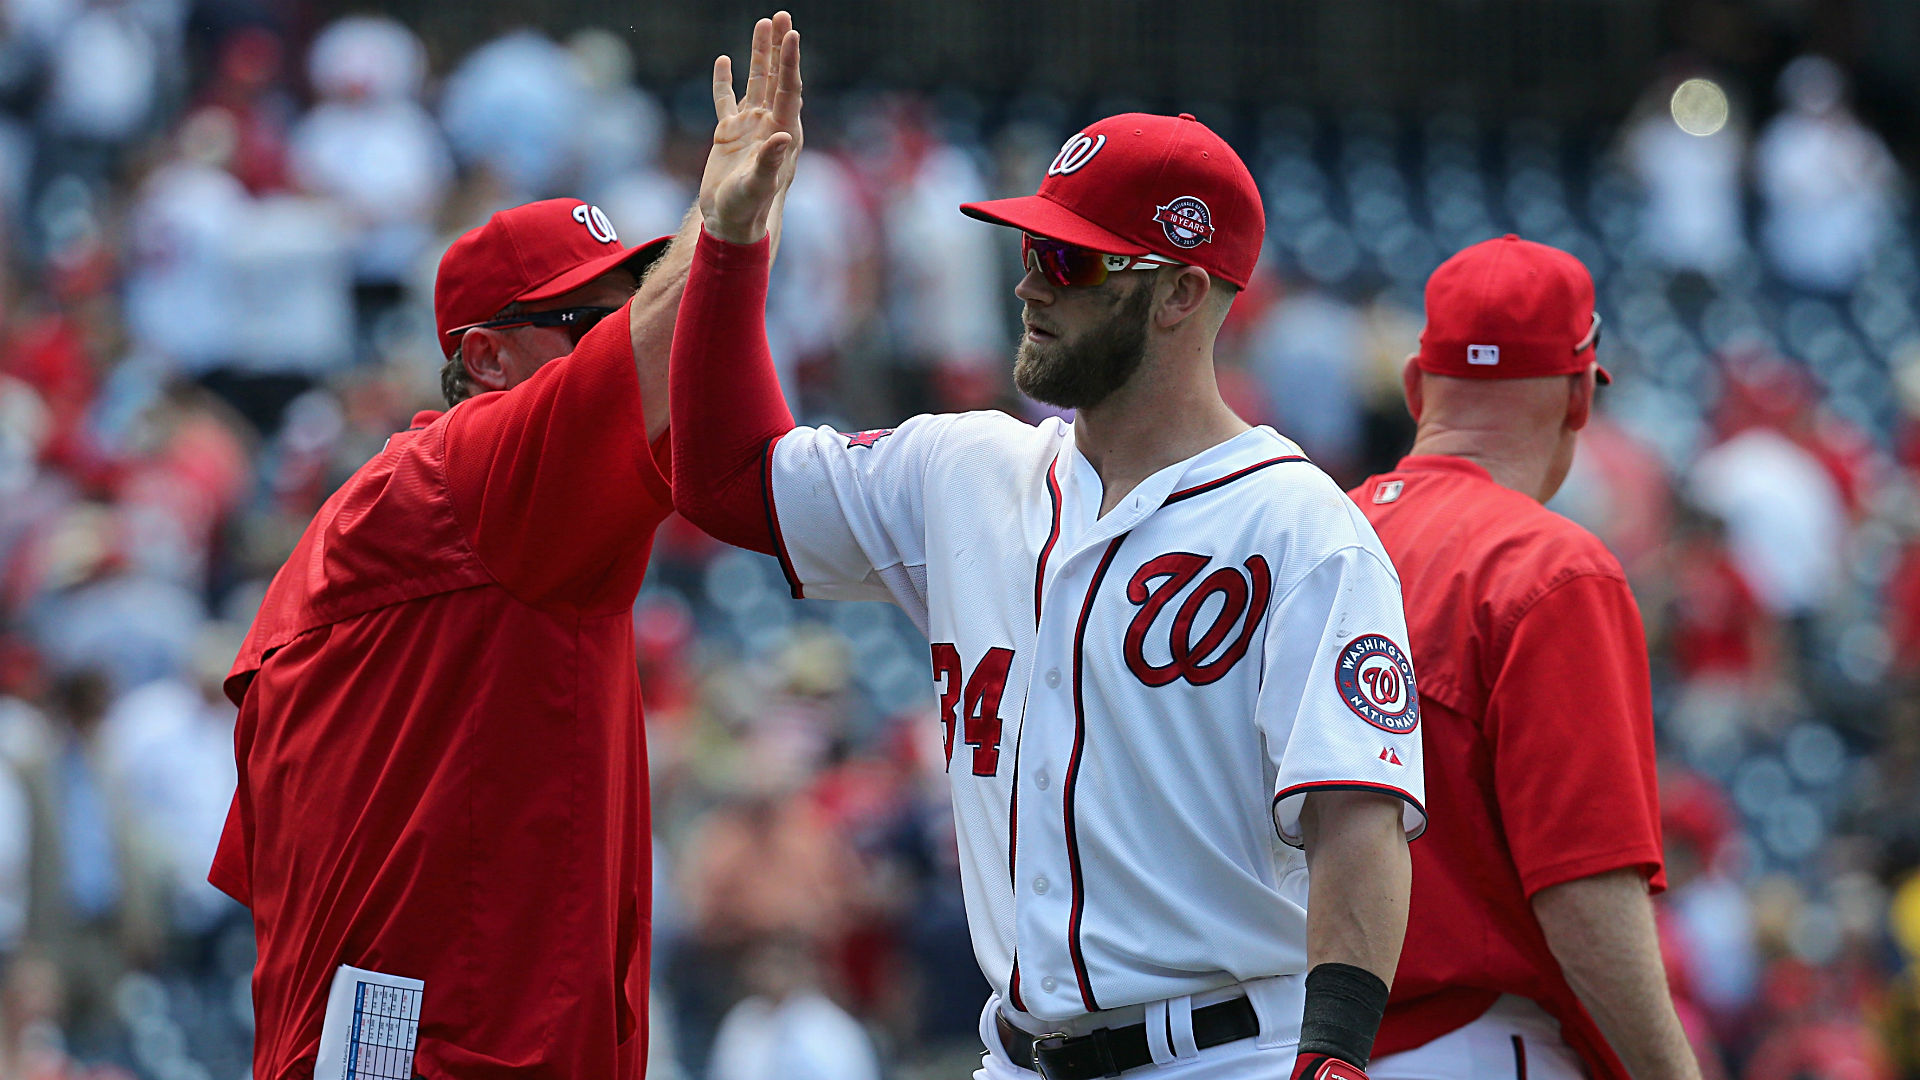 MLB Nightly 9: Harper blasts three HRs; Votto could face fine, suspension